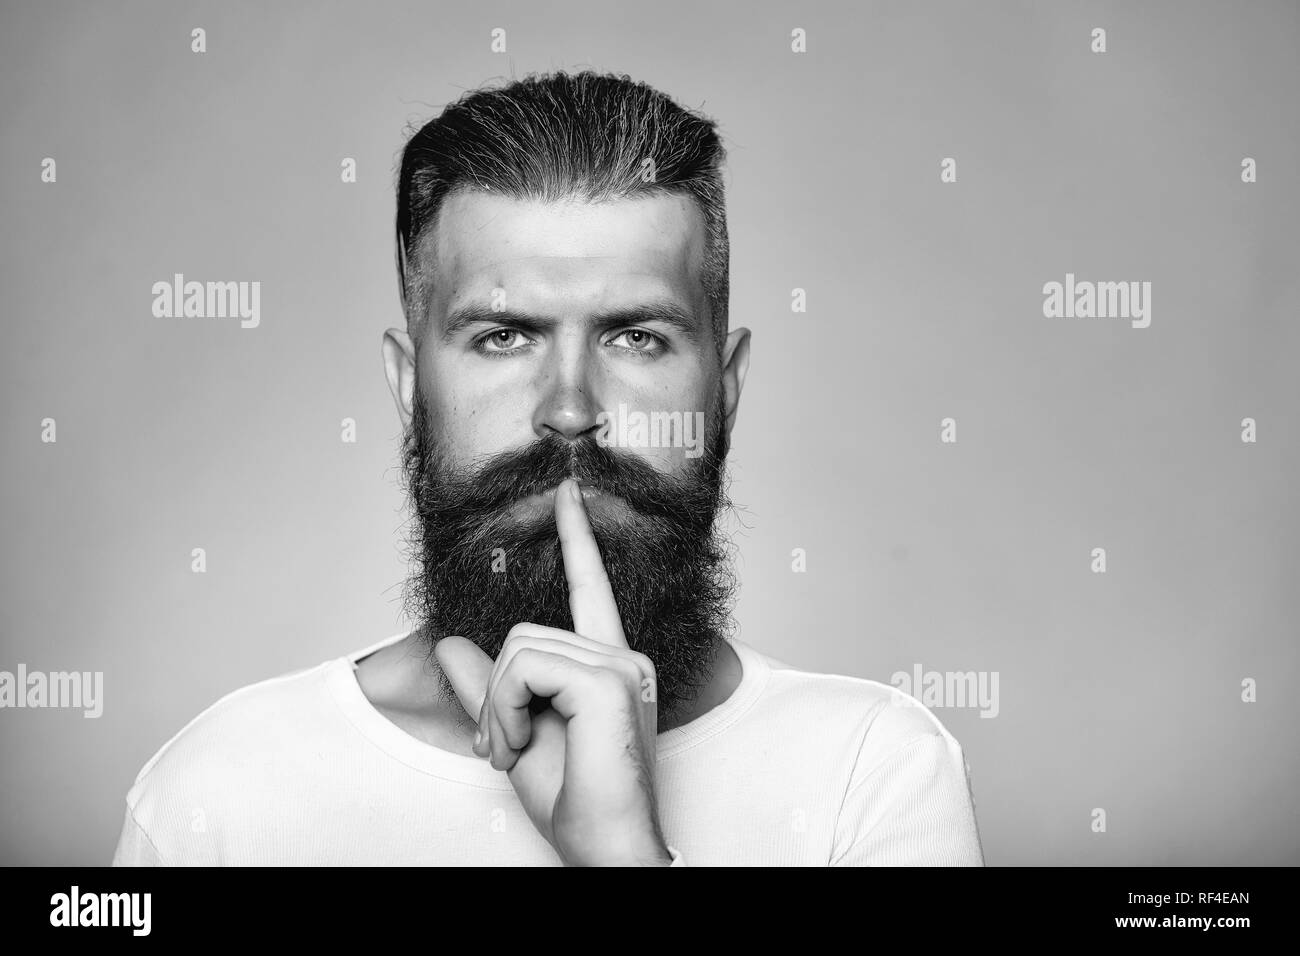 Bearded man with hush gesture - Stock Image